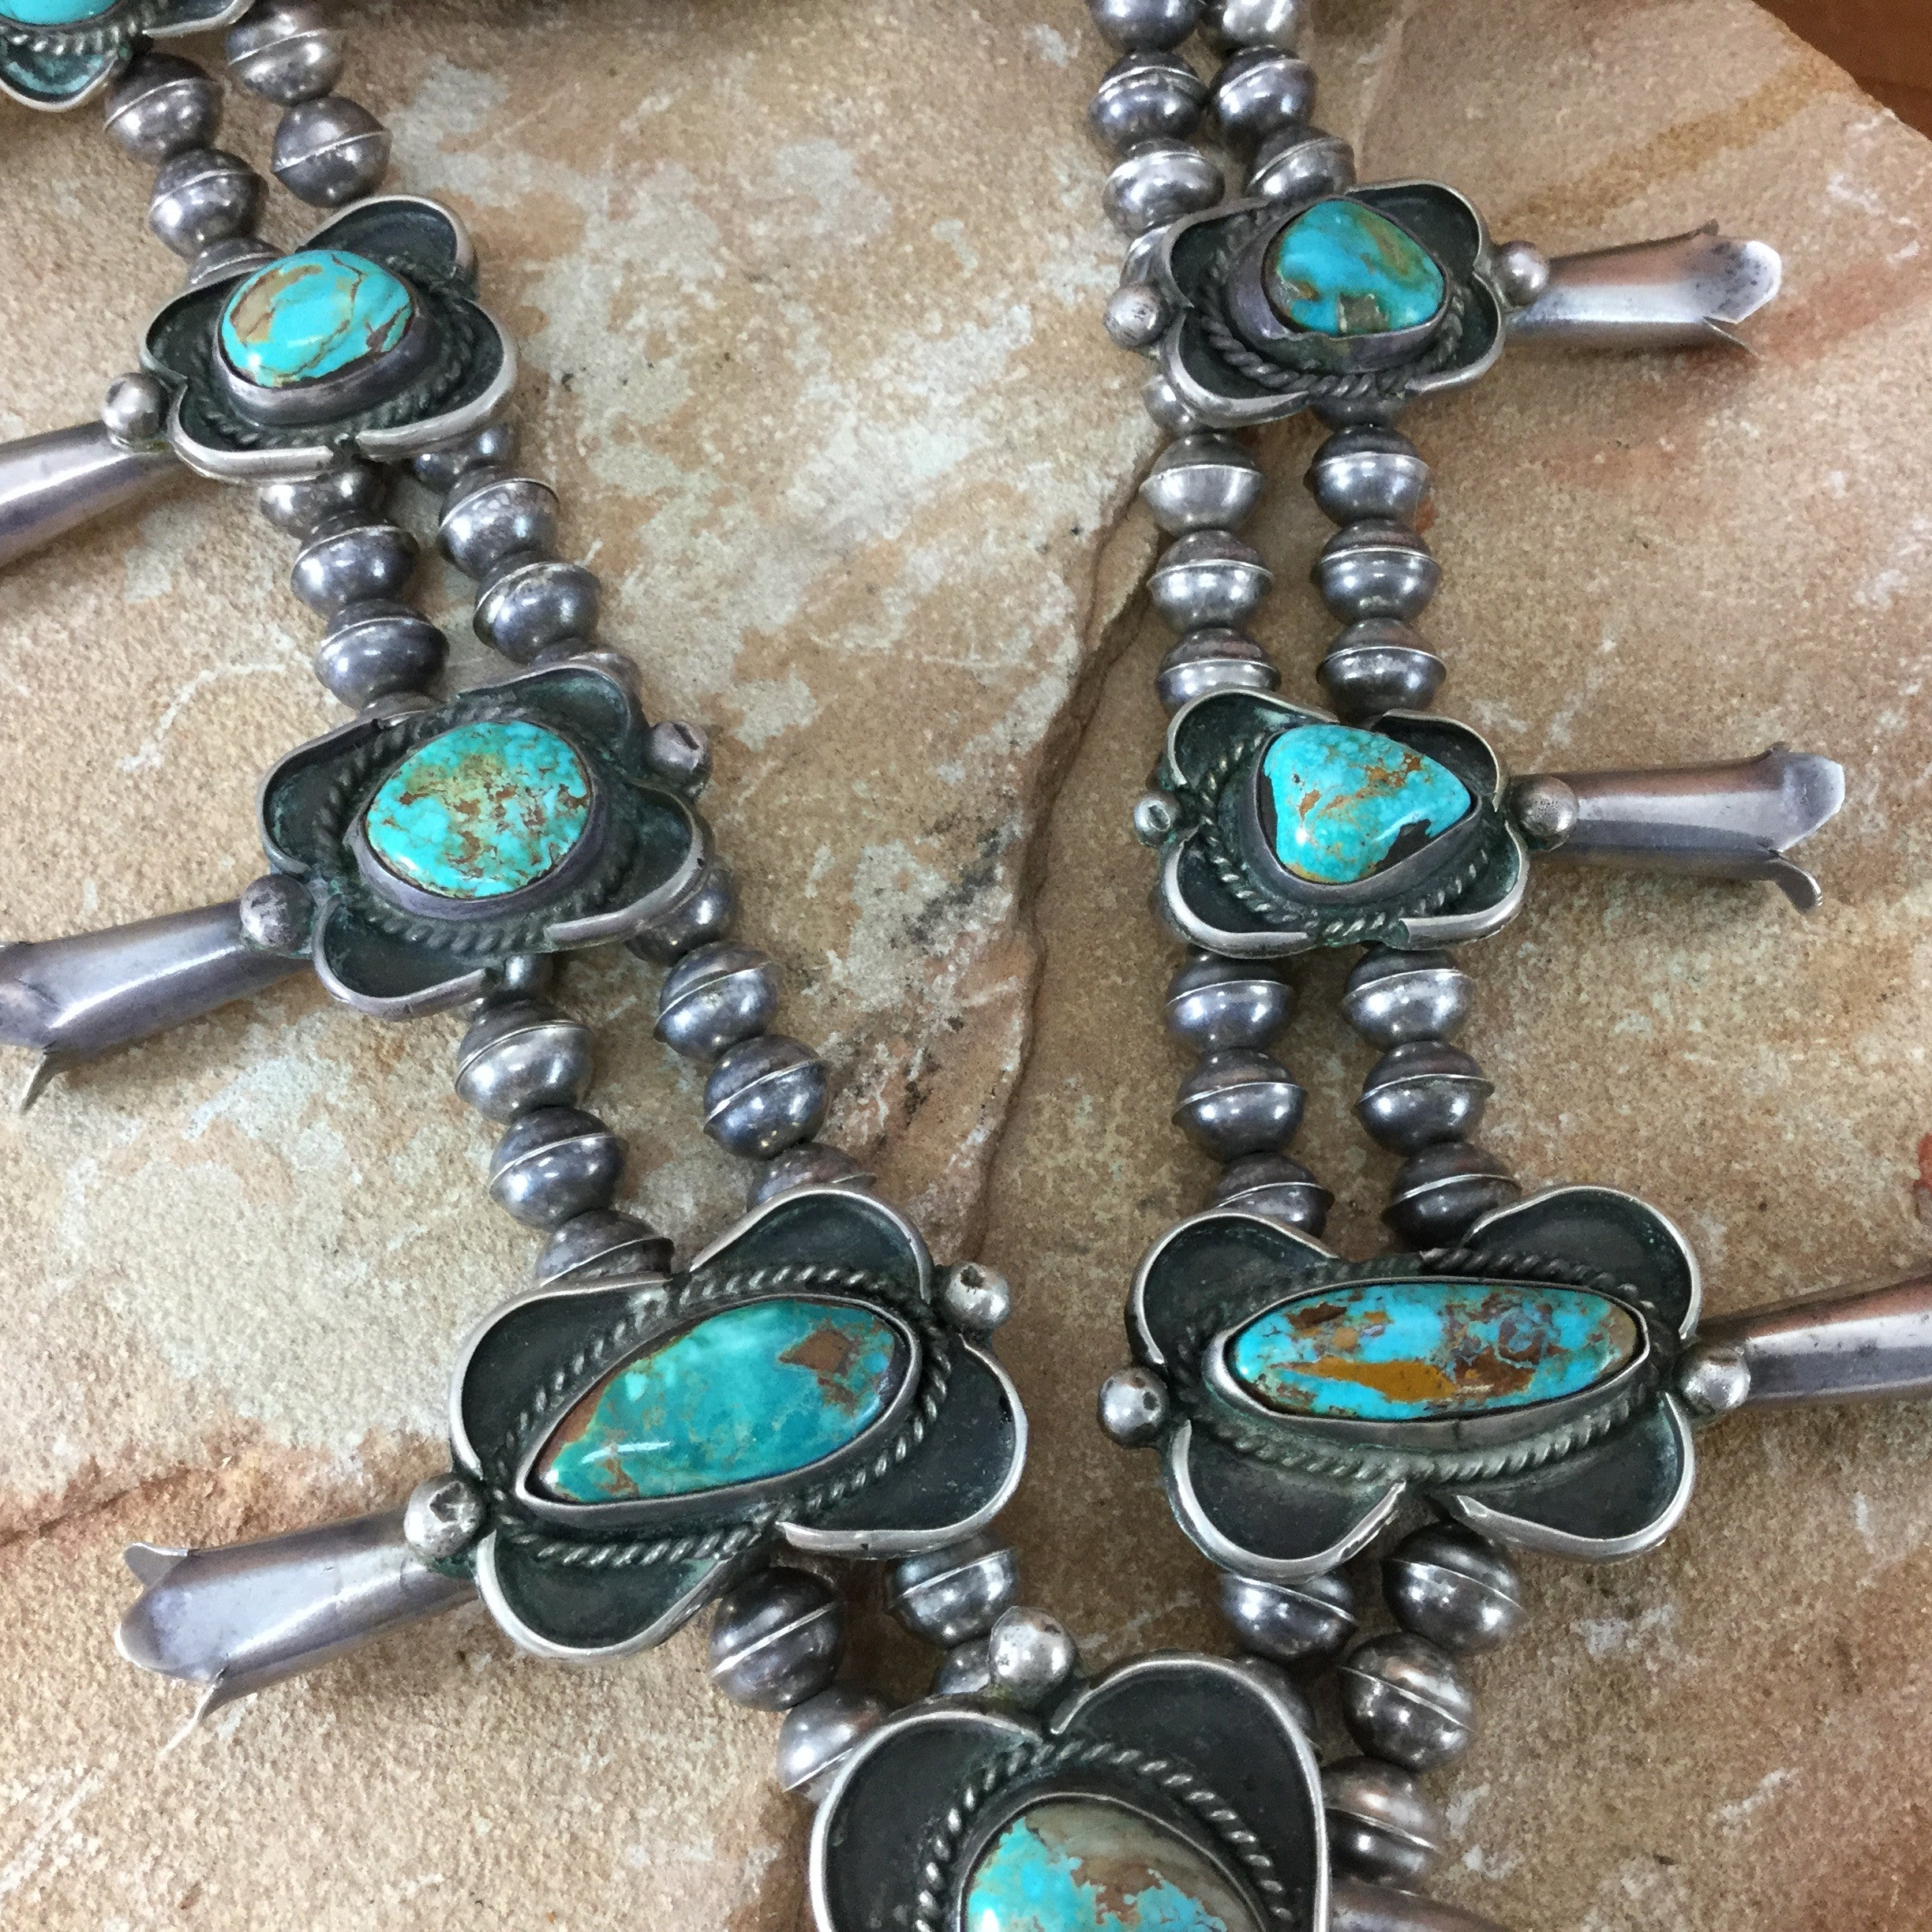 961703b02 ... Vintage Navajo Turquoise Silver Squash Blossom Necklace -- Estate  Jewelry ...